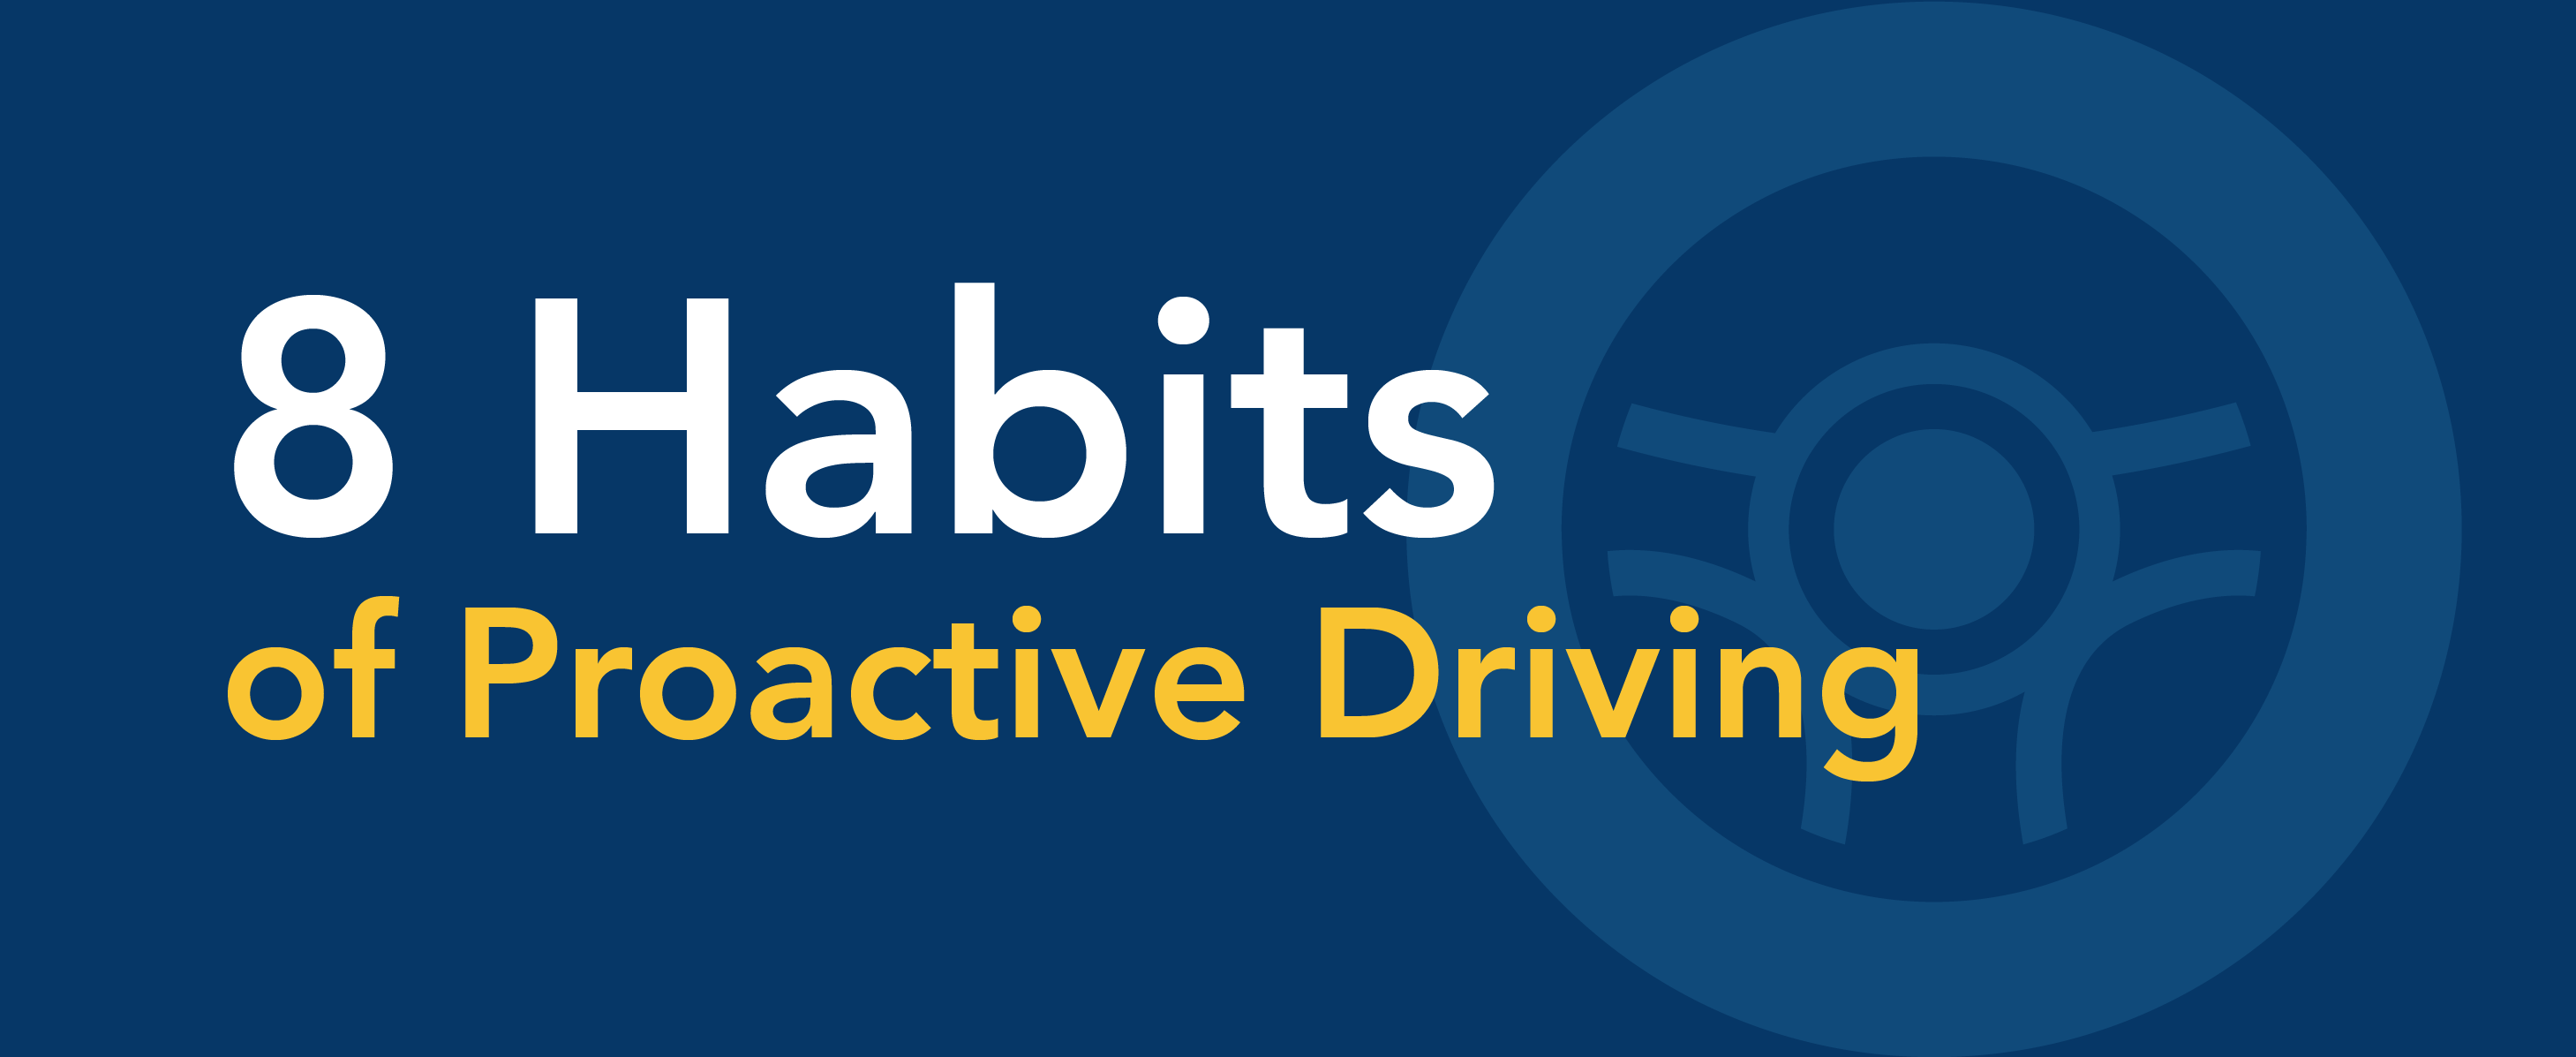 8 habits of proactive driving.